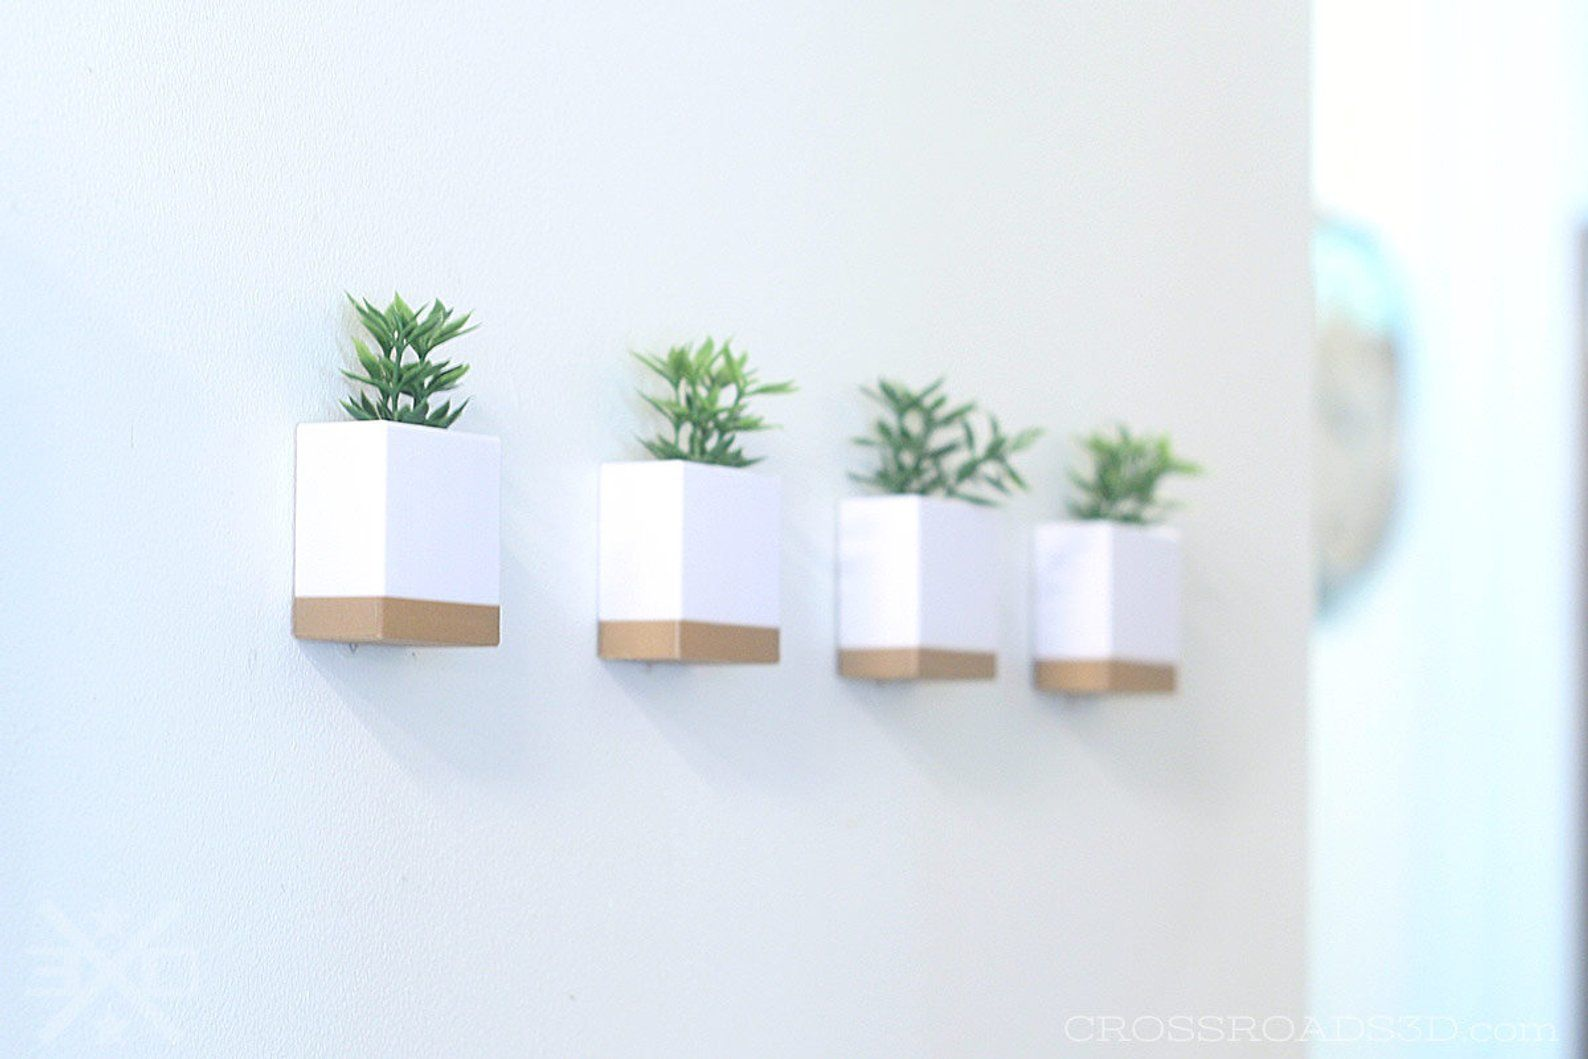 Modern Wall Planter Set Small Indoor Geometric Cube Planters For